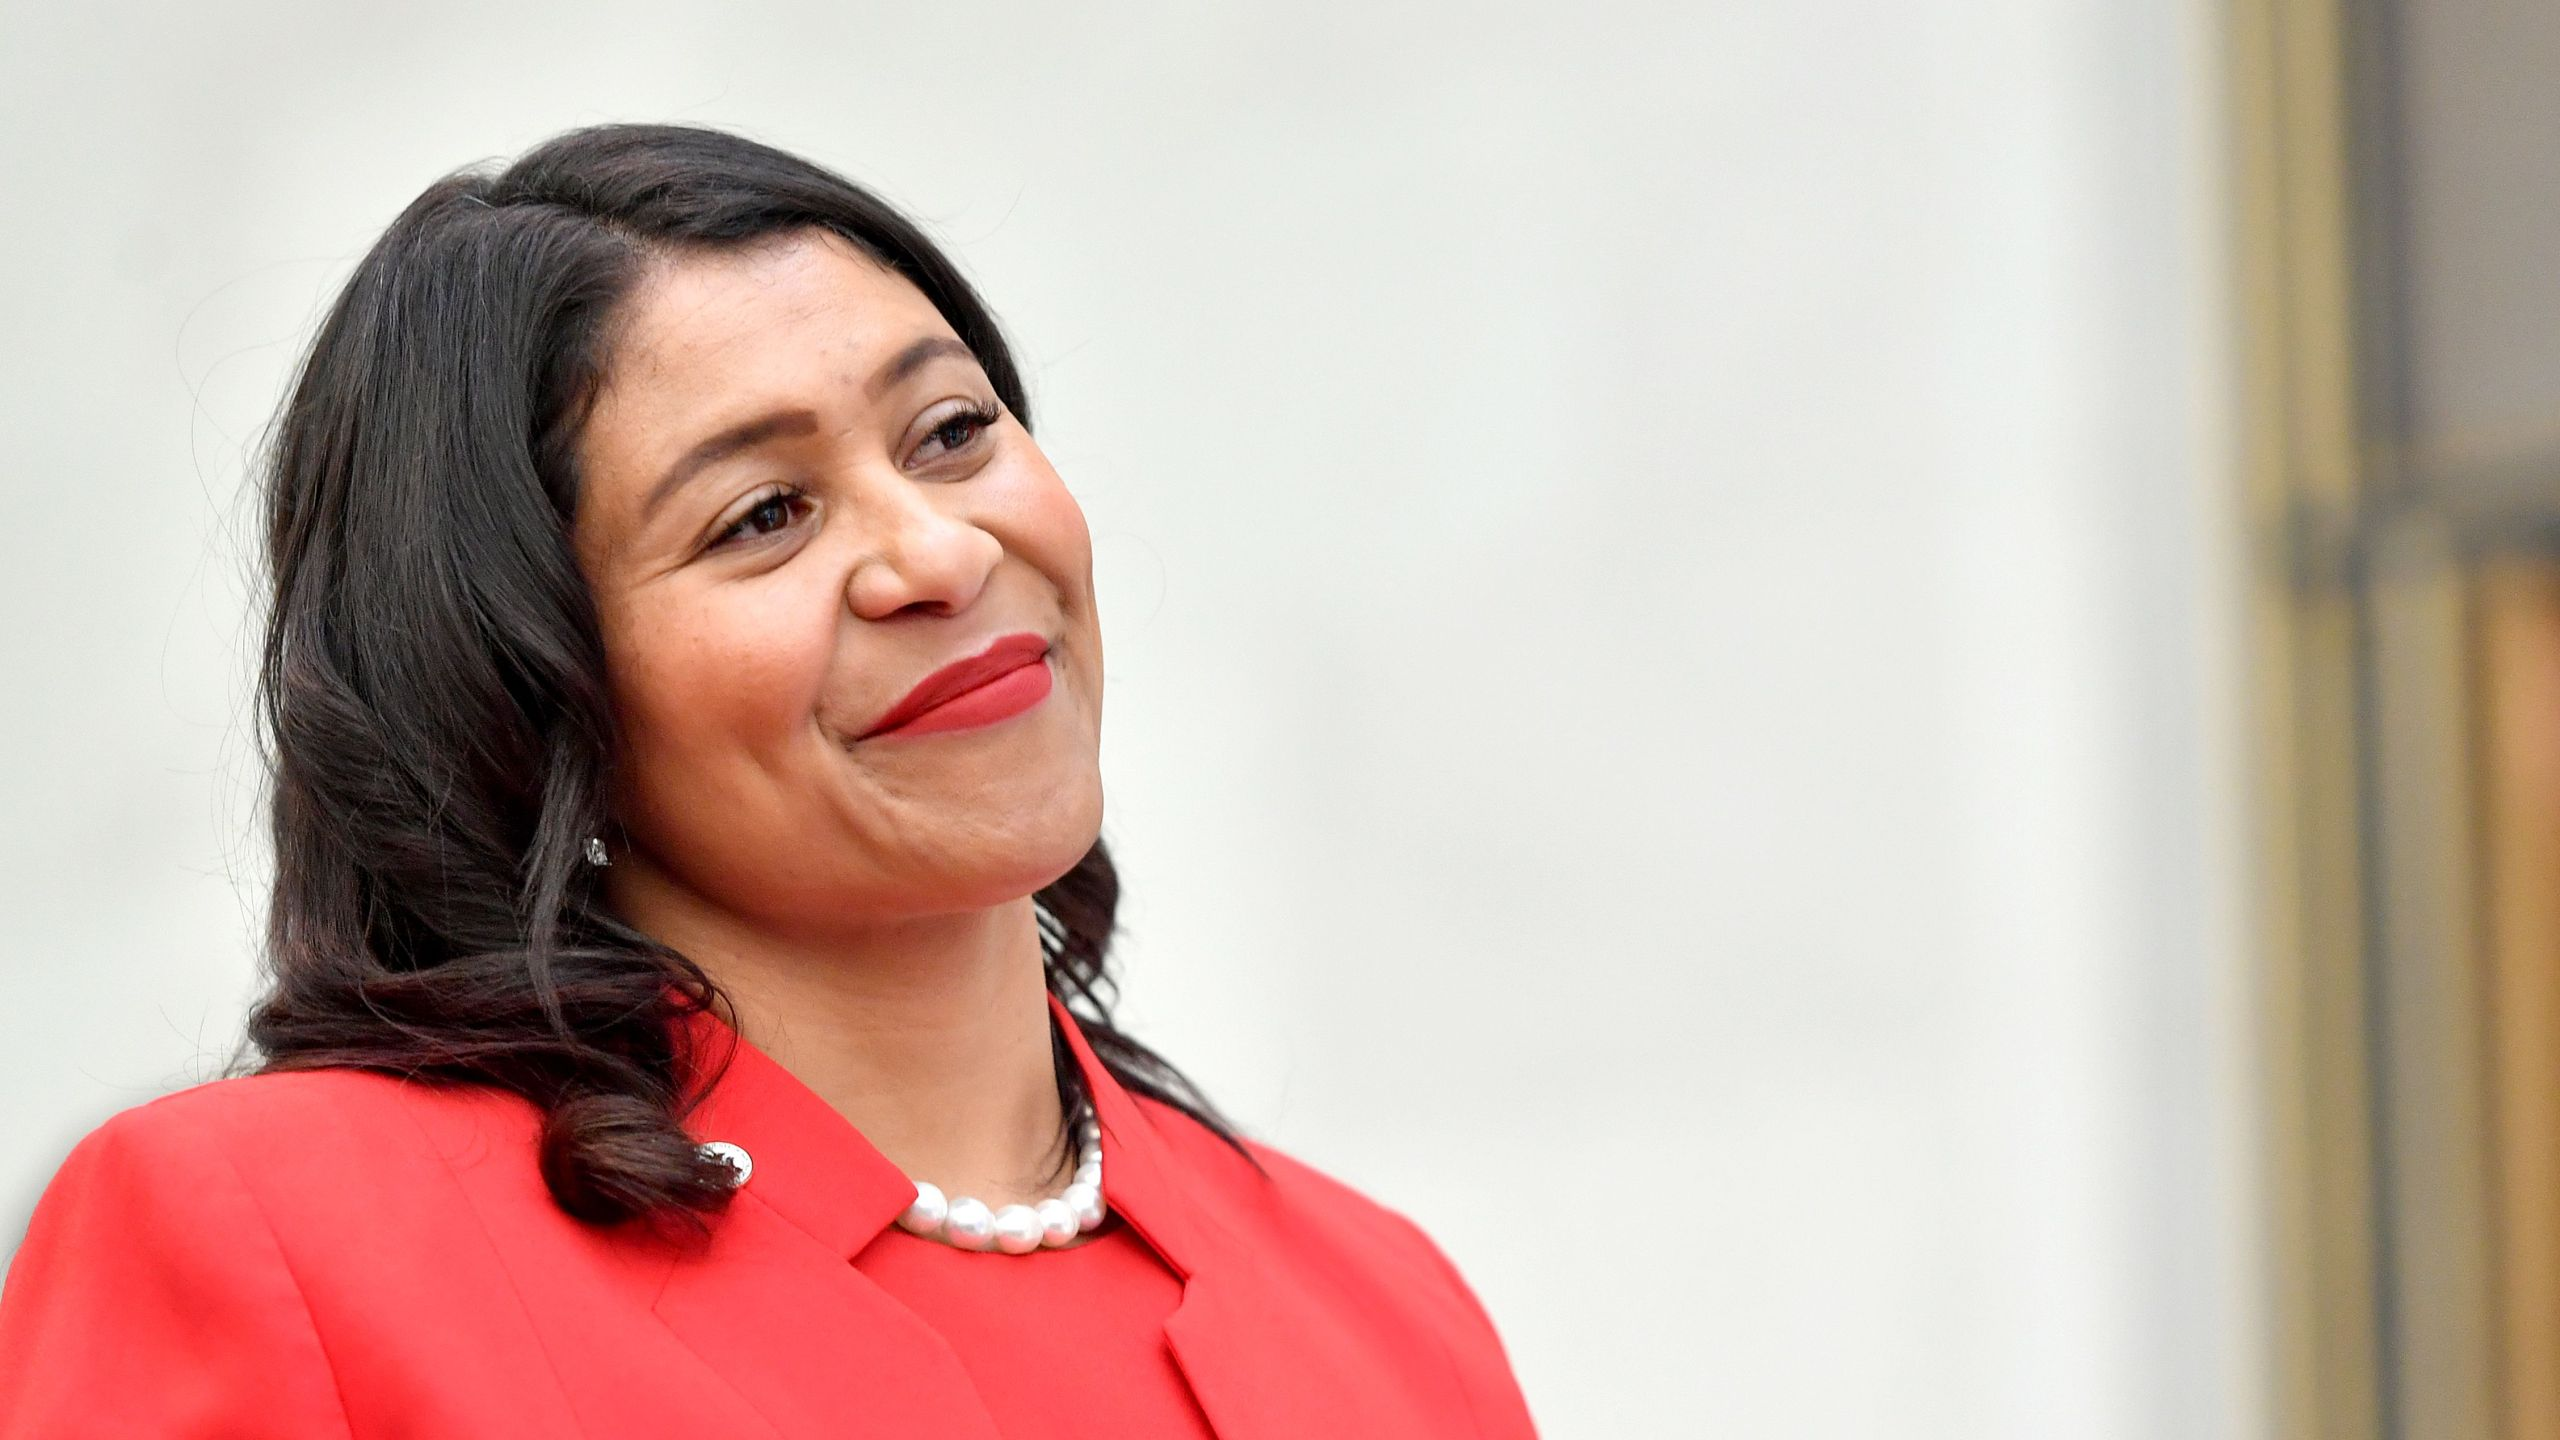 San Francisco Mayor London Breed appears at an event at San Francisco's City Hall on Sept. 12, 2018. (Credit: JOSH EDELSON/AFP/Getty Images)